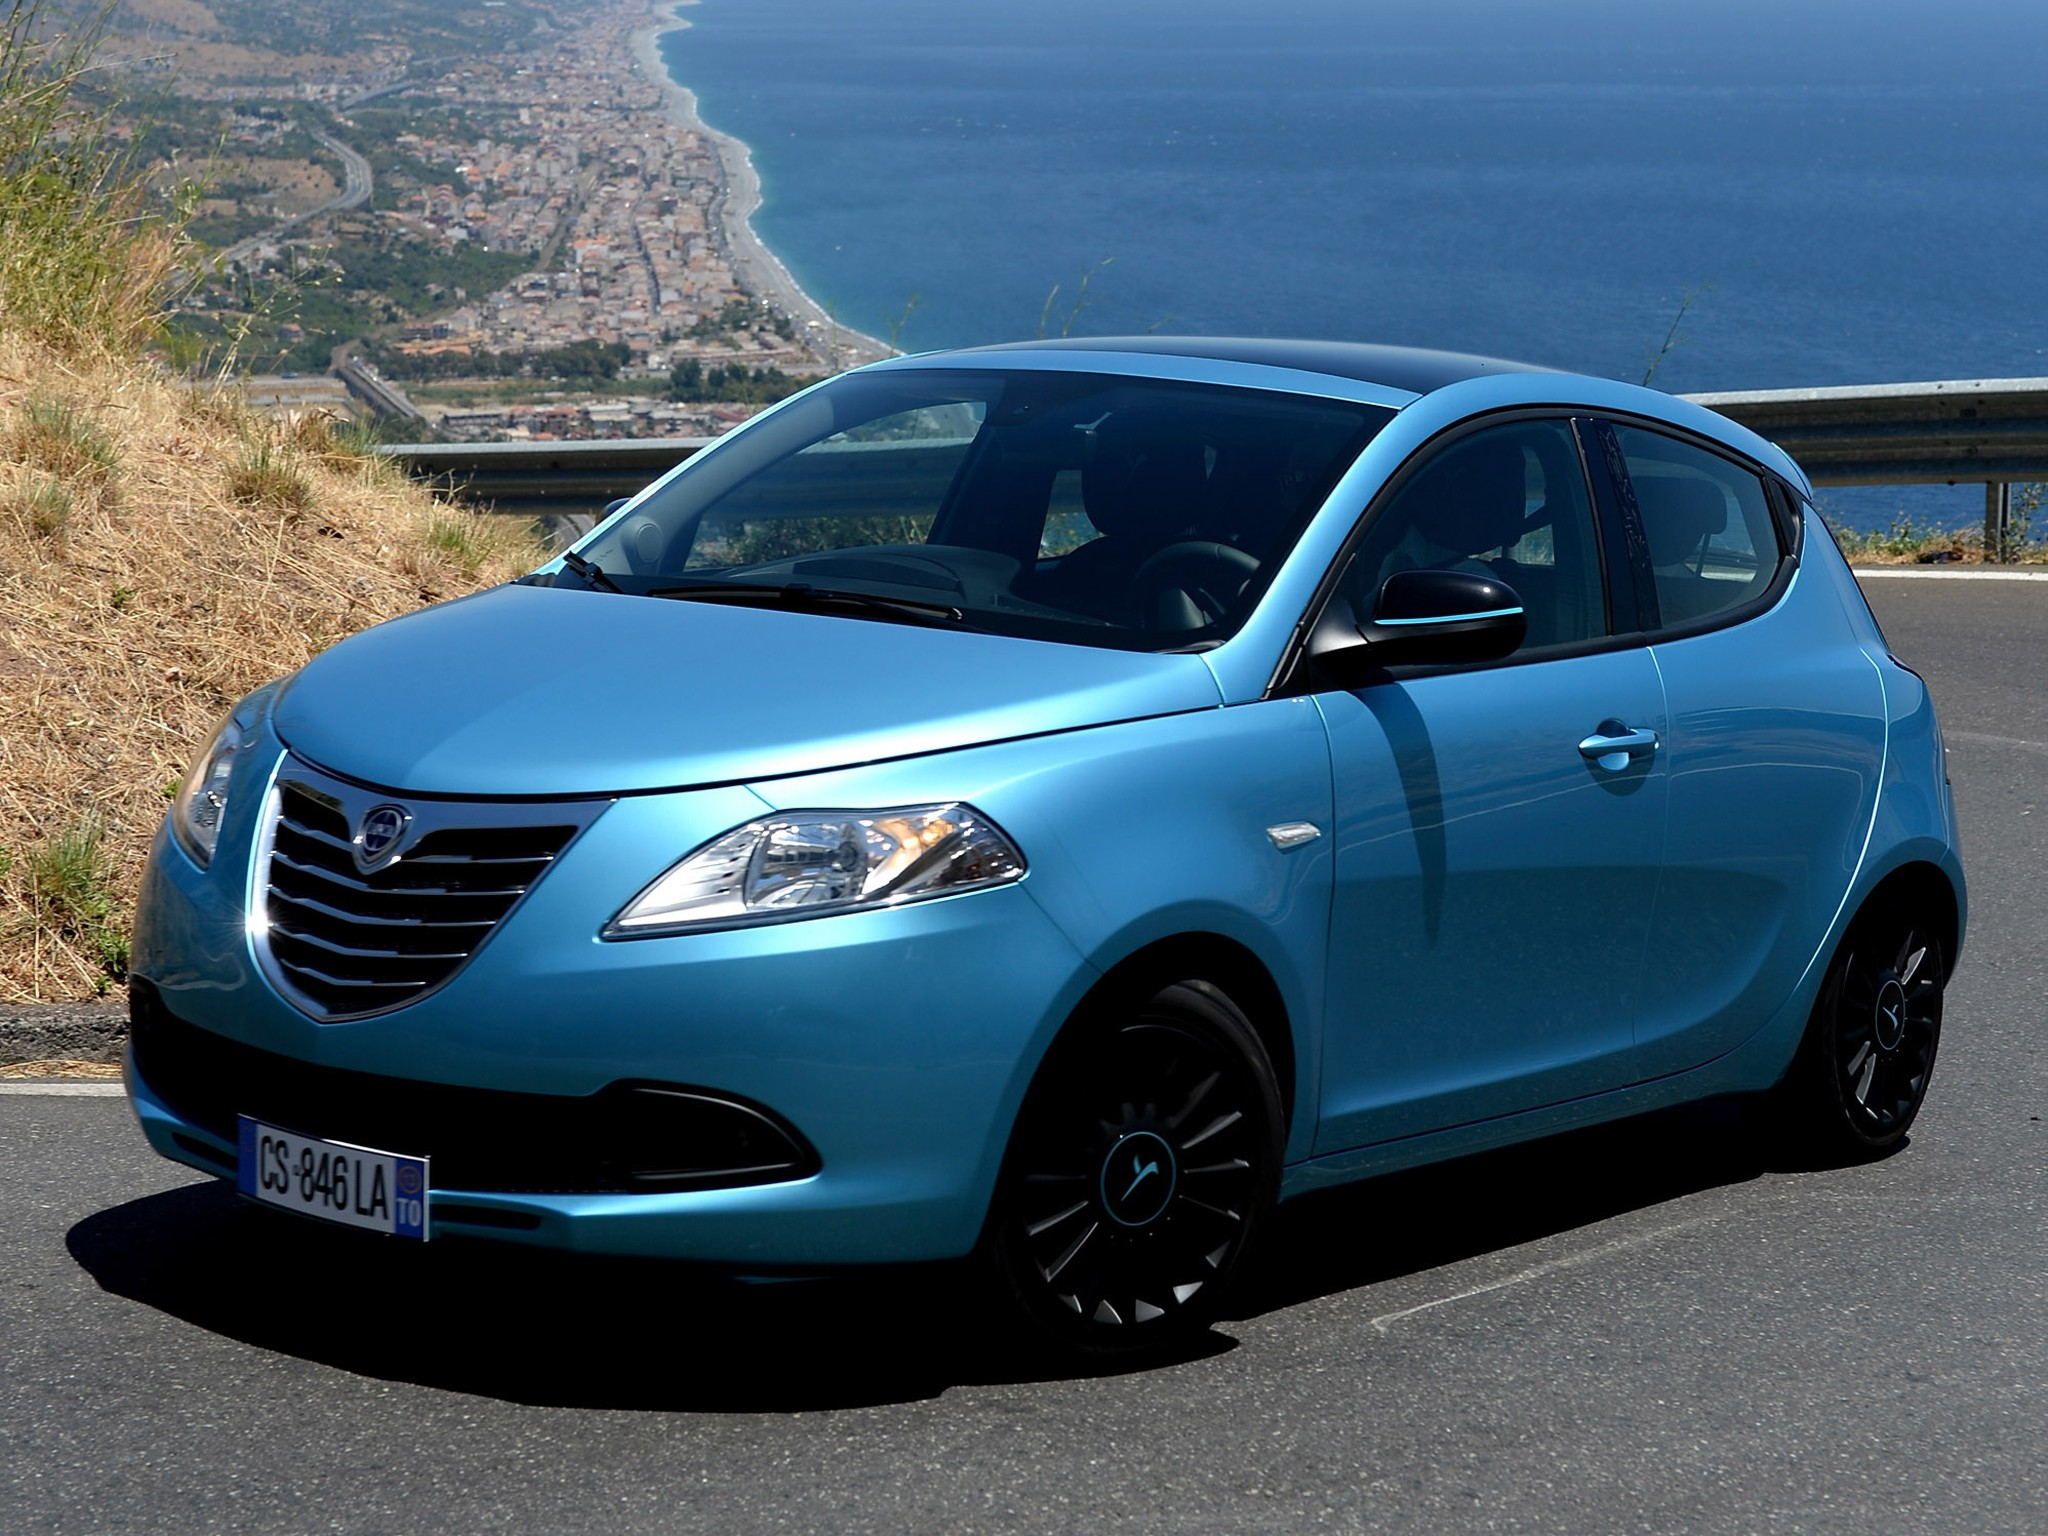 lancia ypsilon specs 2011 2012 2013 2014 2015 autoevolution. Black Bedroom Furniture Sets. Home Design Ideas